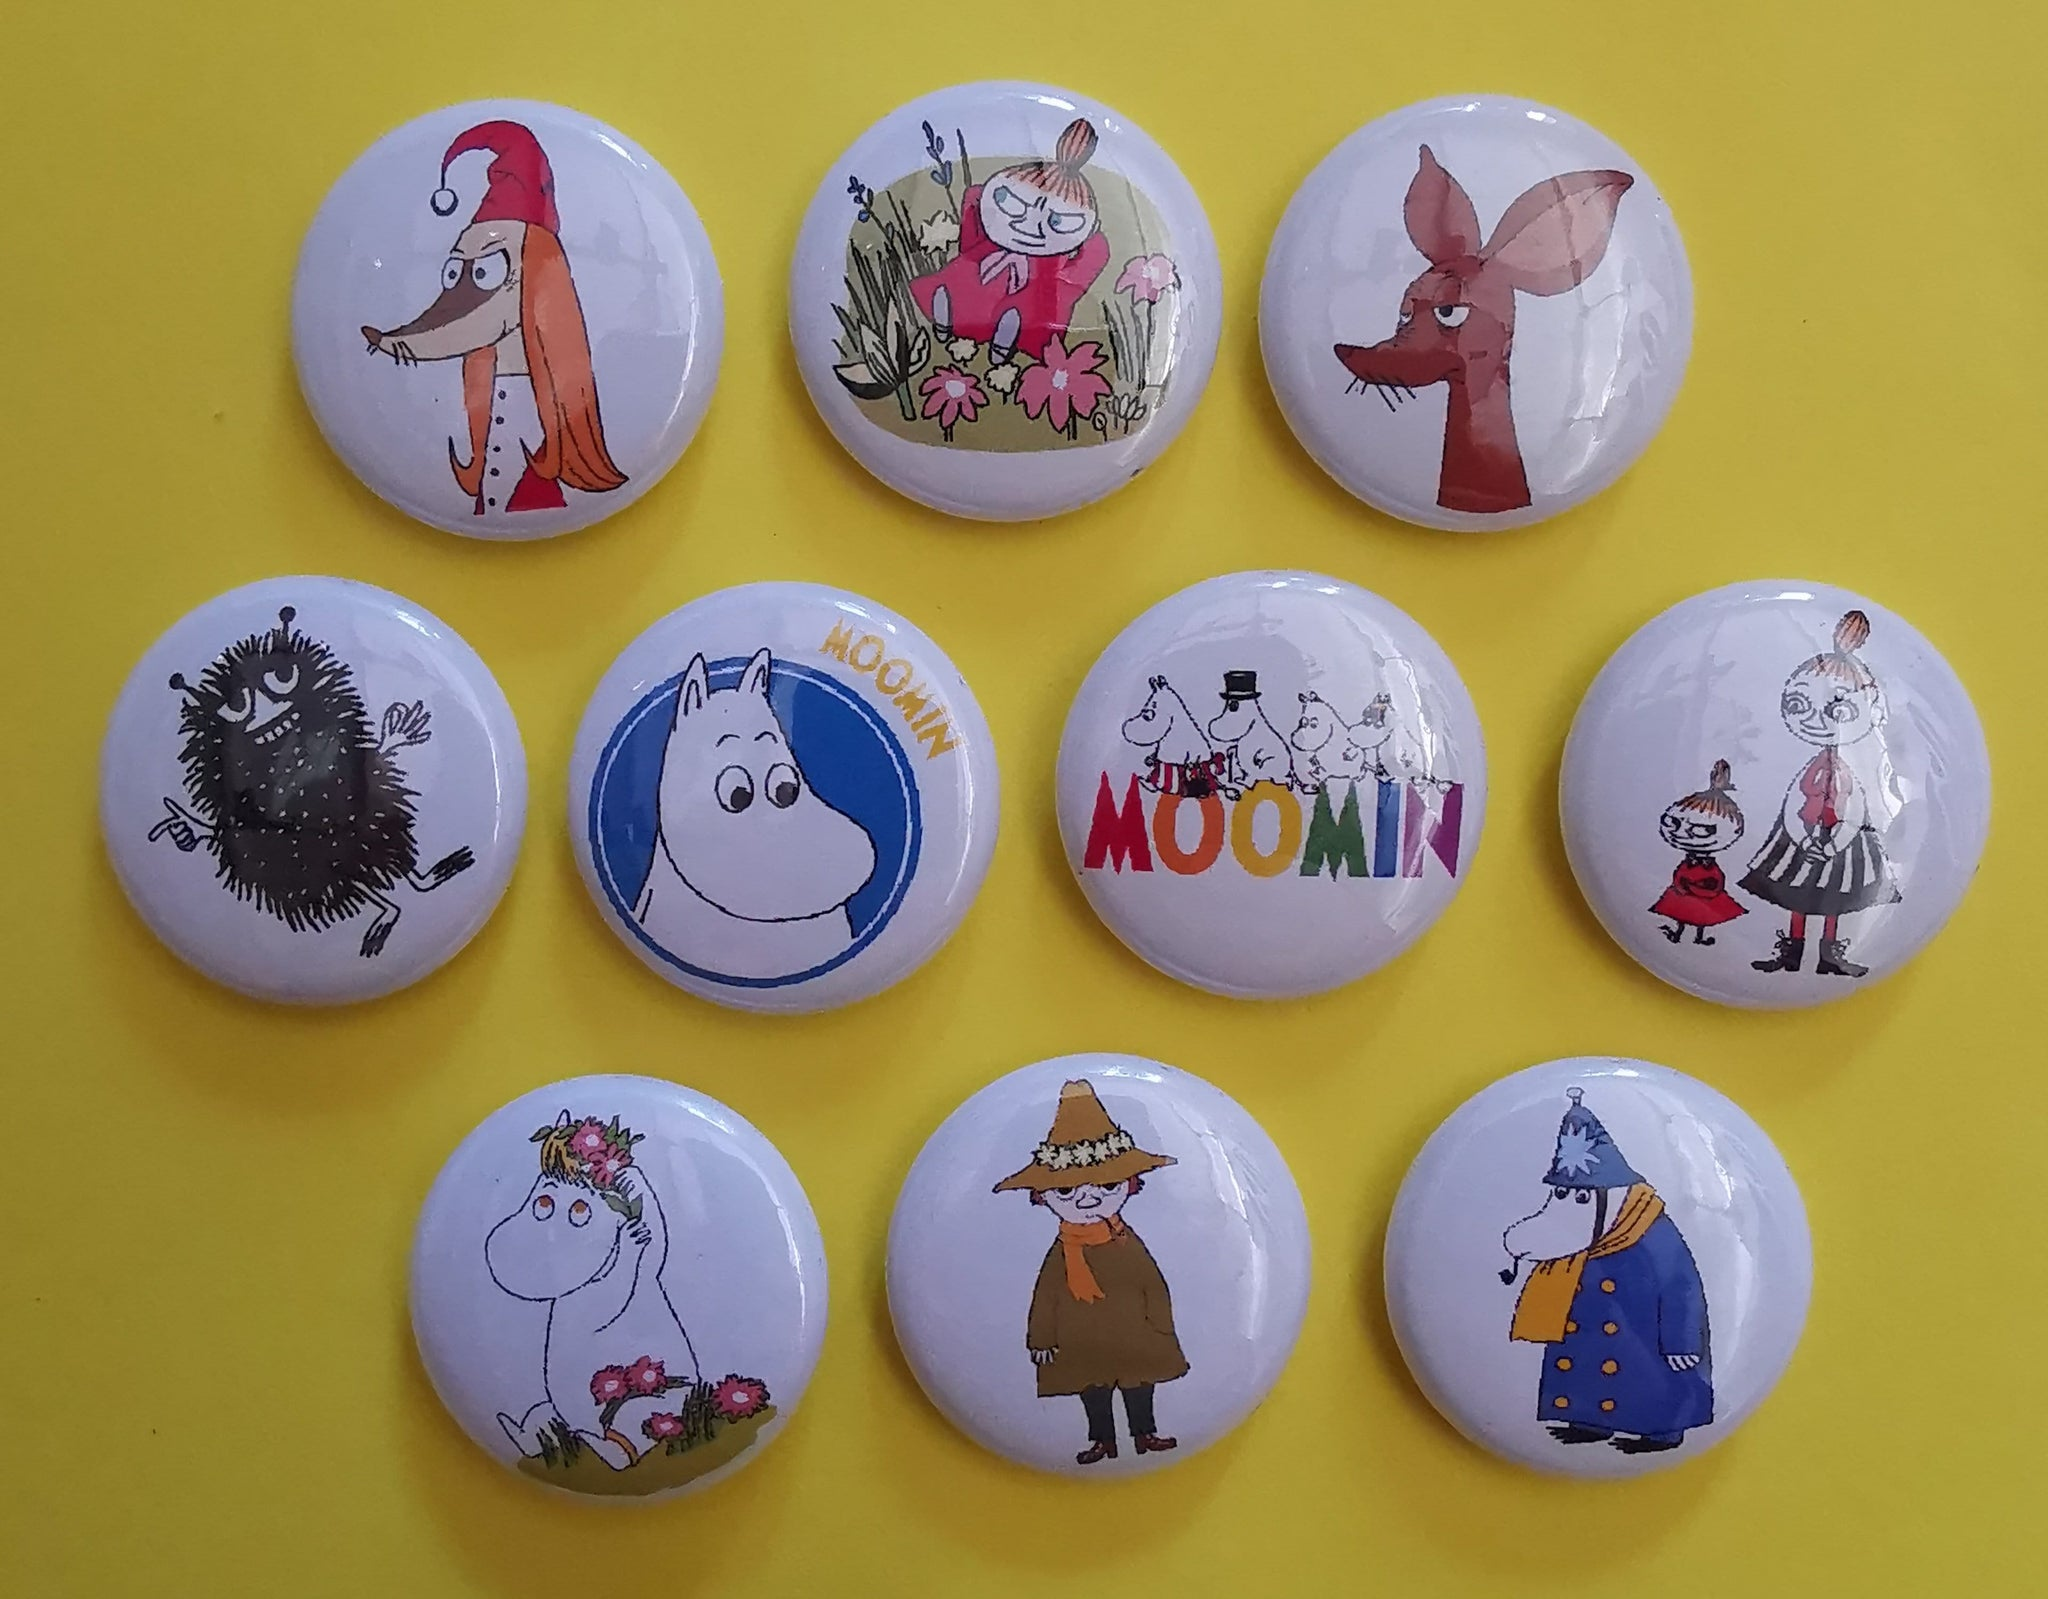 Moomin Pins Collection 2